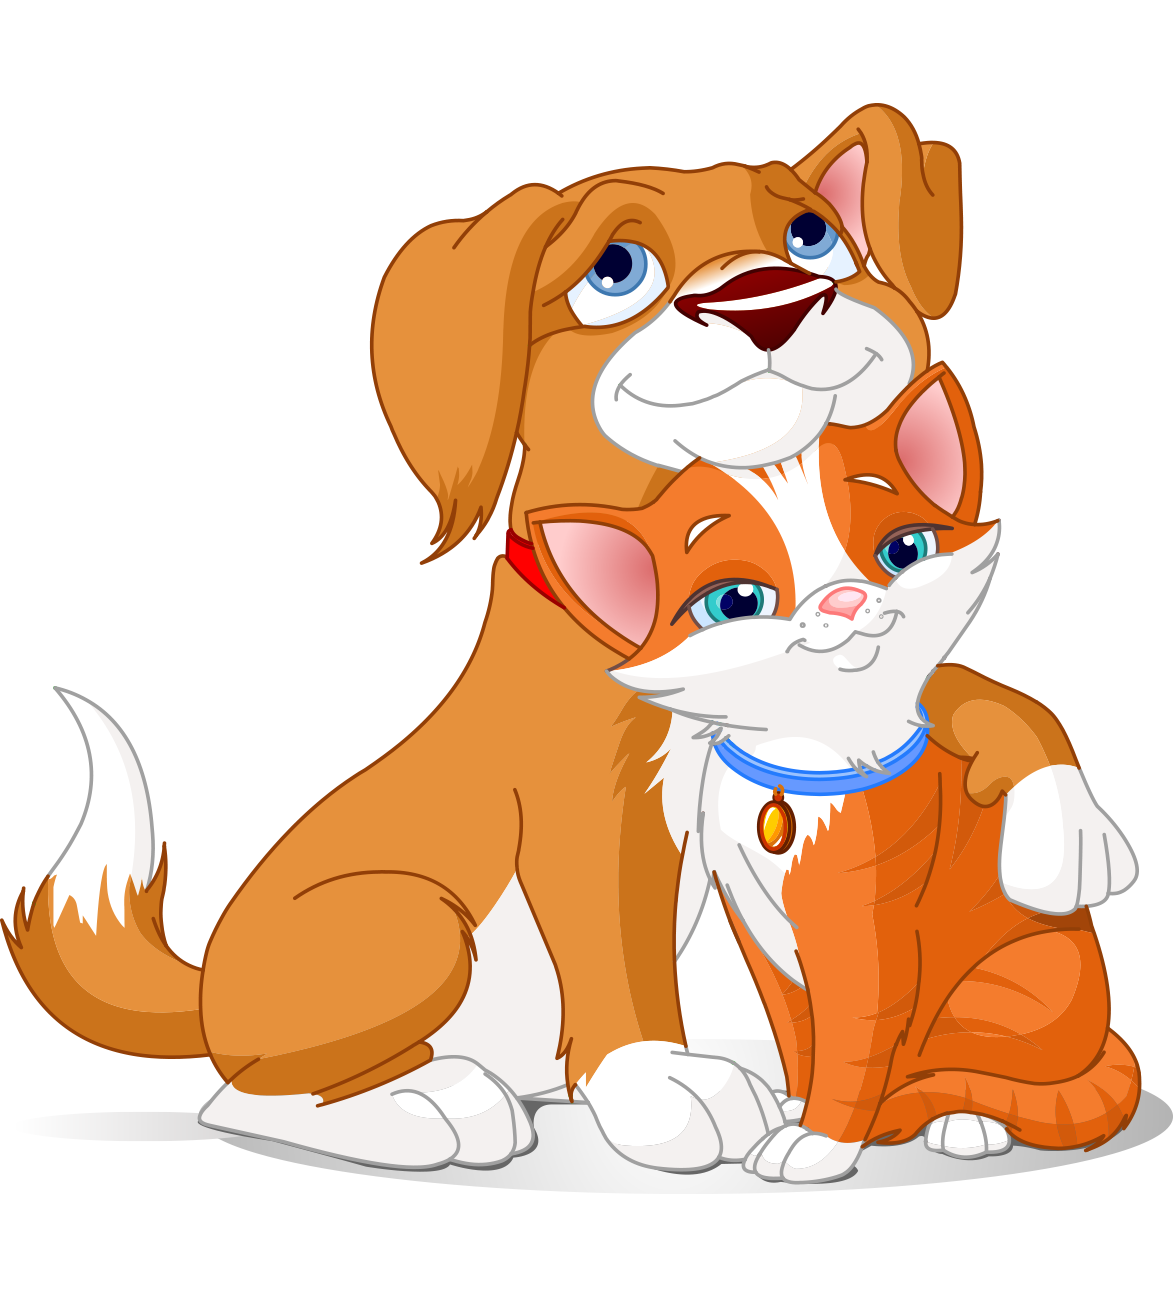 Pet clipart hug dog. Cat relationship clip art